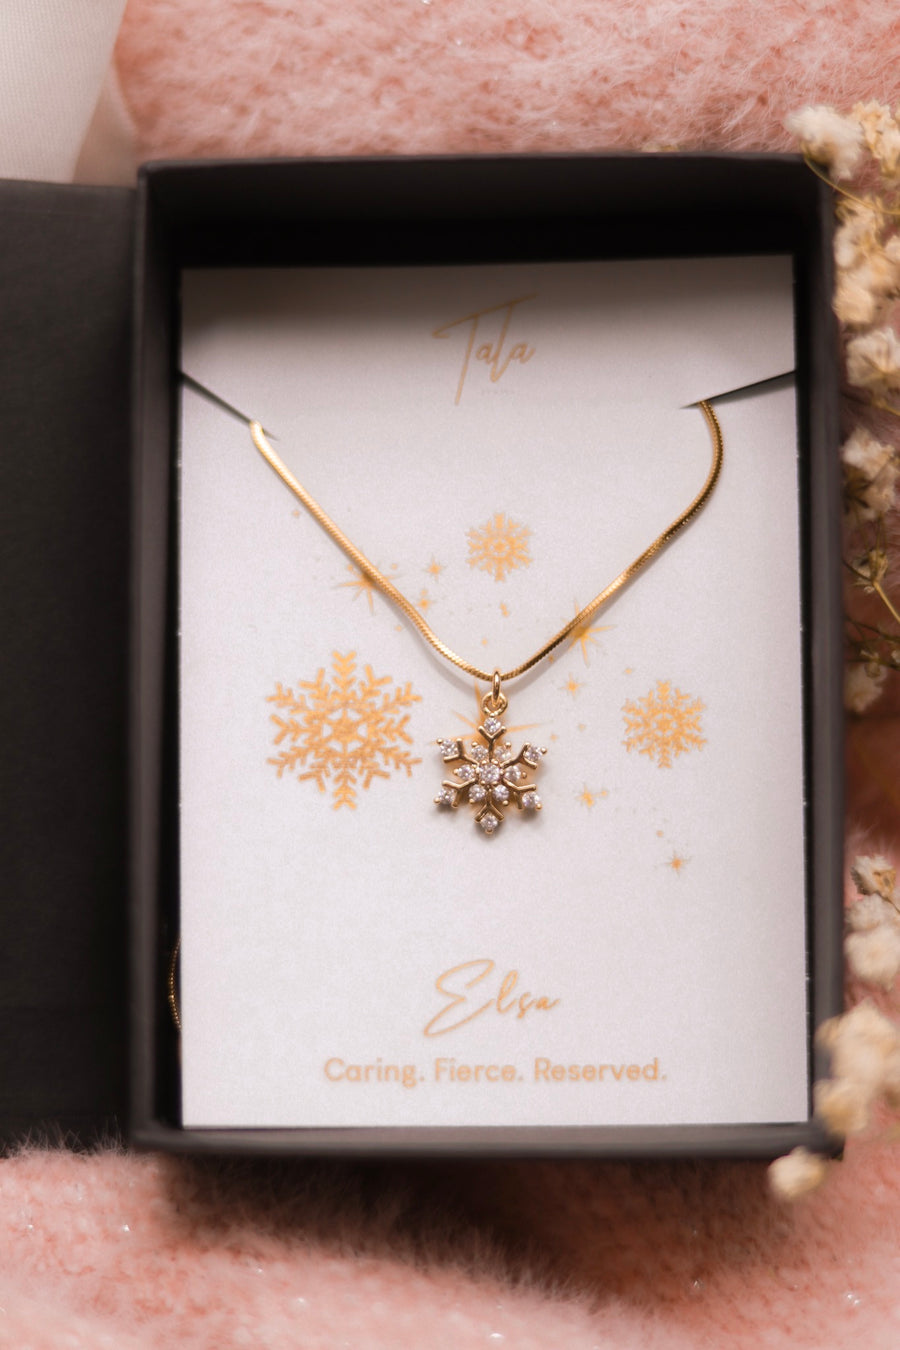 Elsa Snowflake Necklace